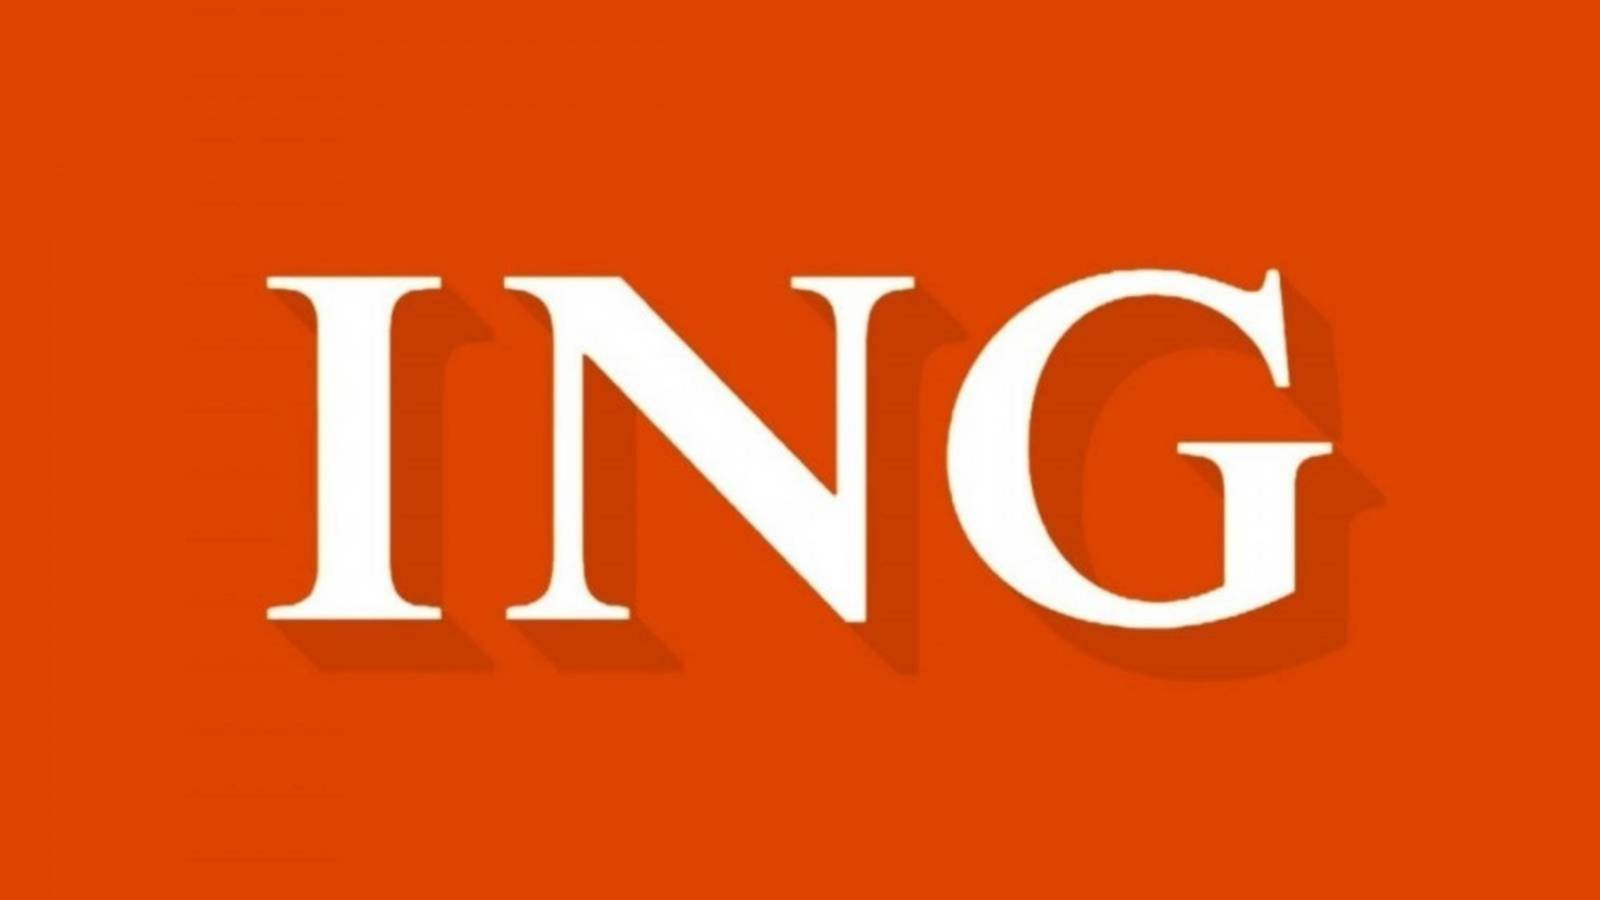 ING Bank curatenie